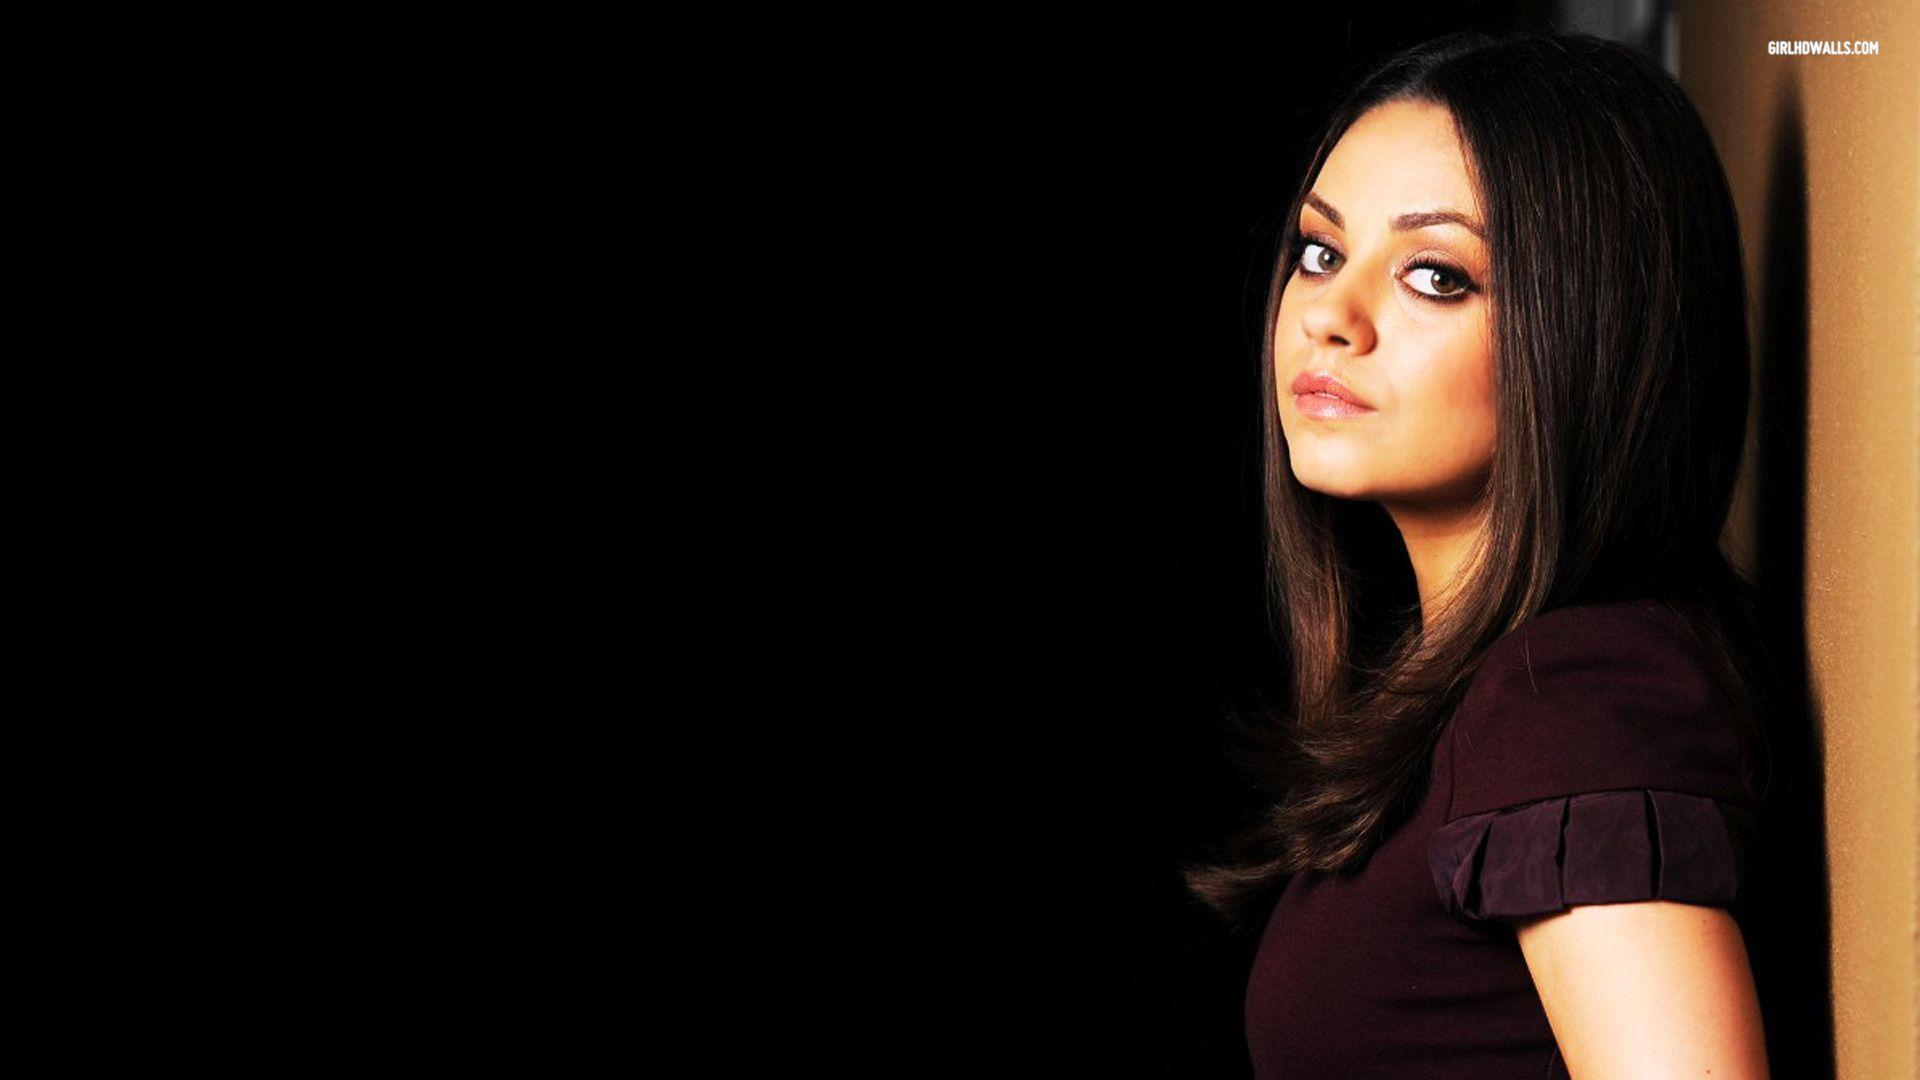 Mila Kunis Wallpaper, pictures, image, photos